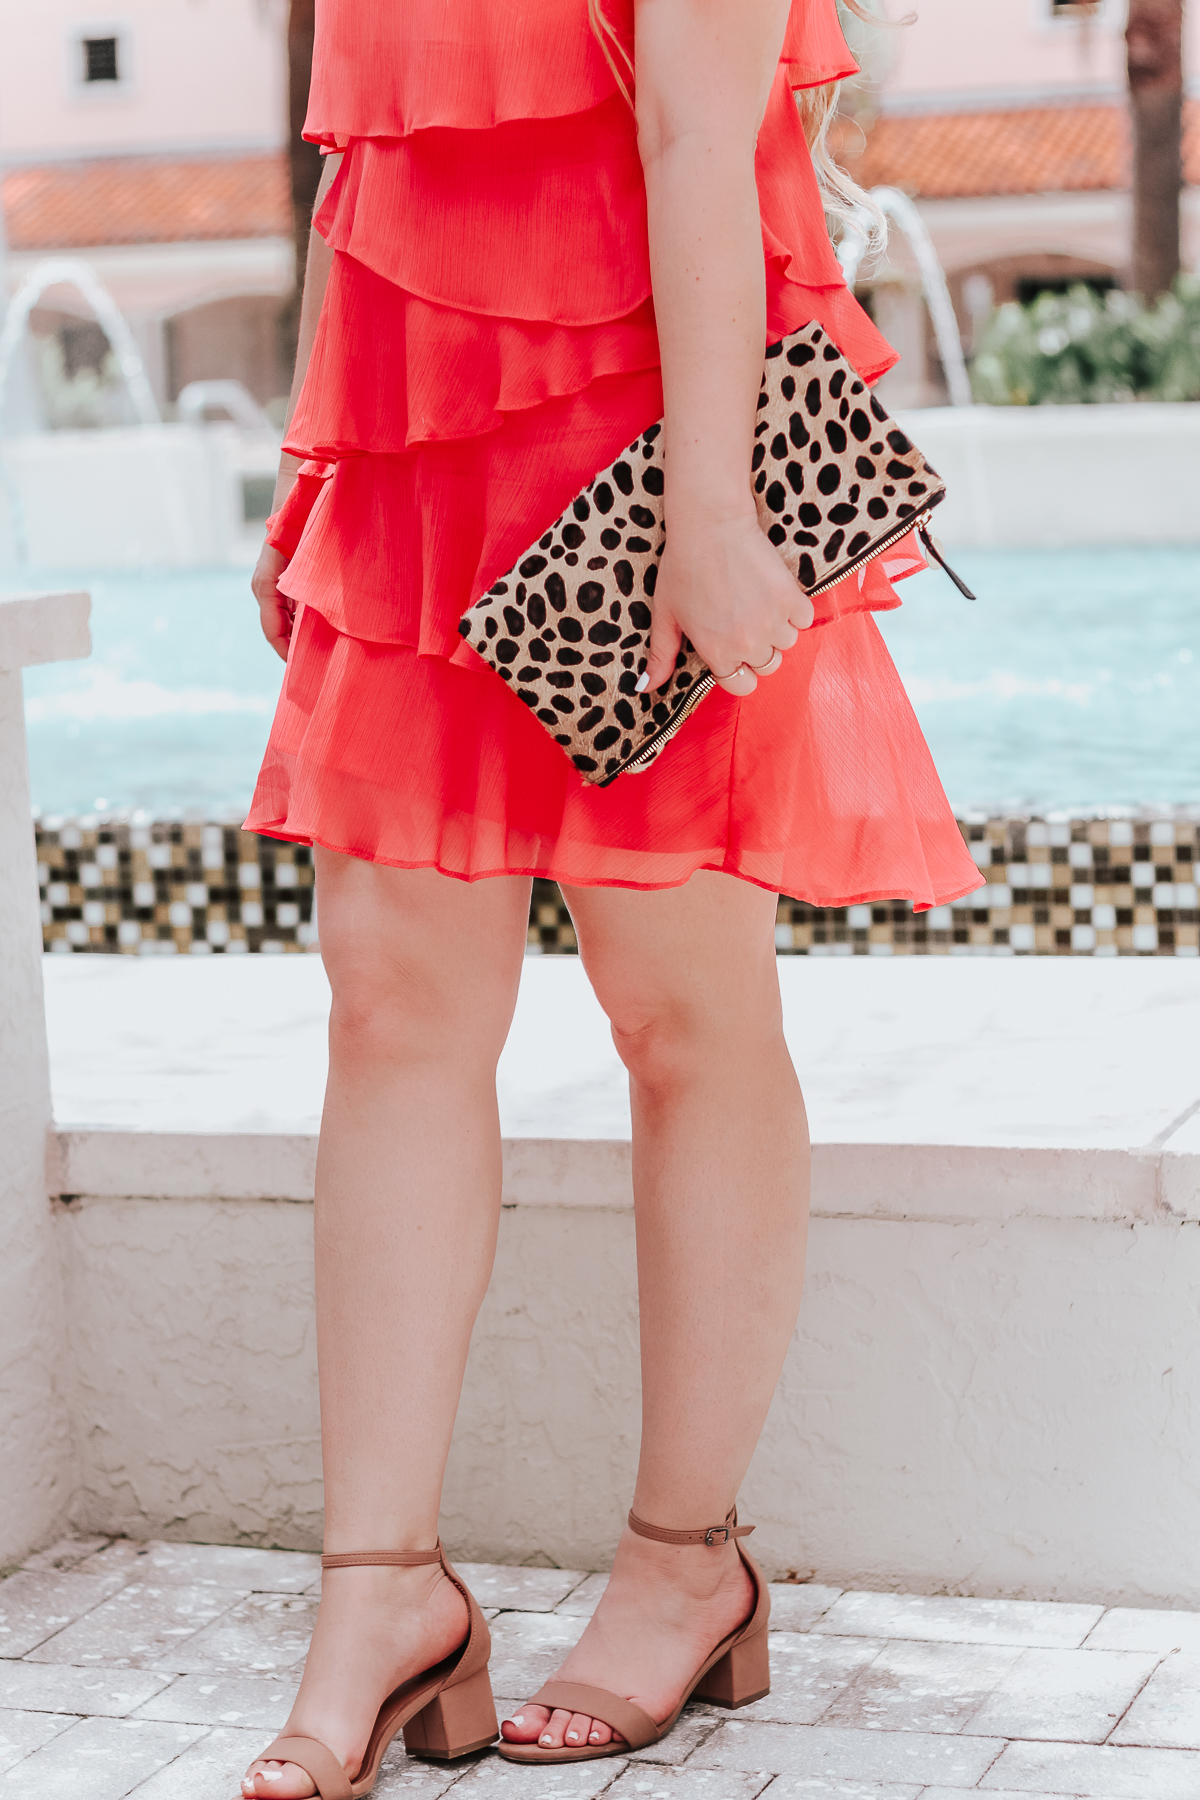 Coral dress and leopard clutch for summer